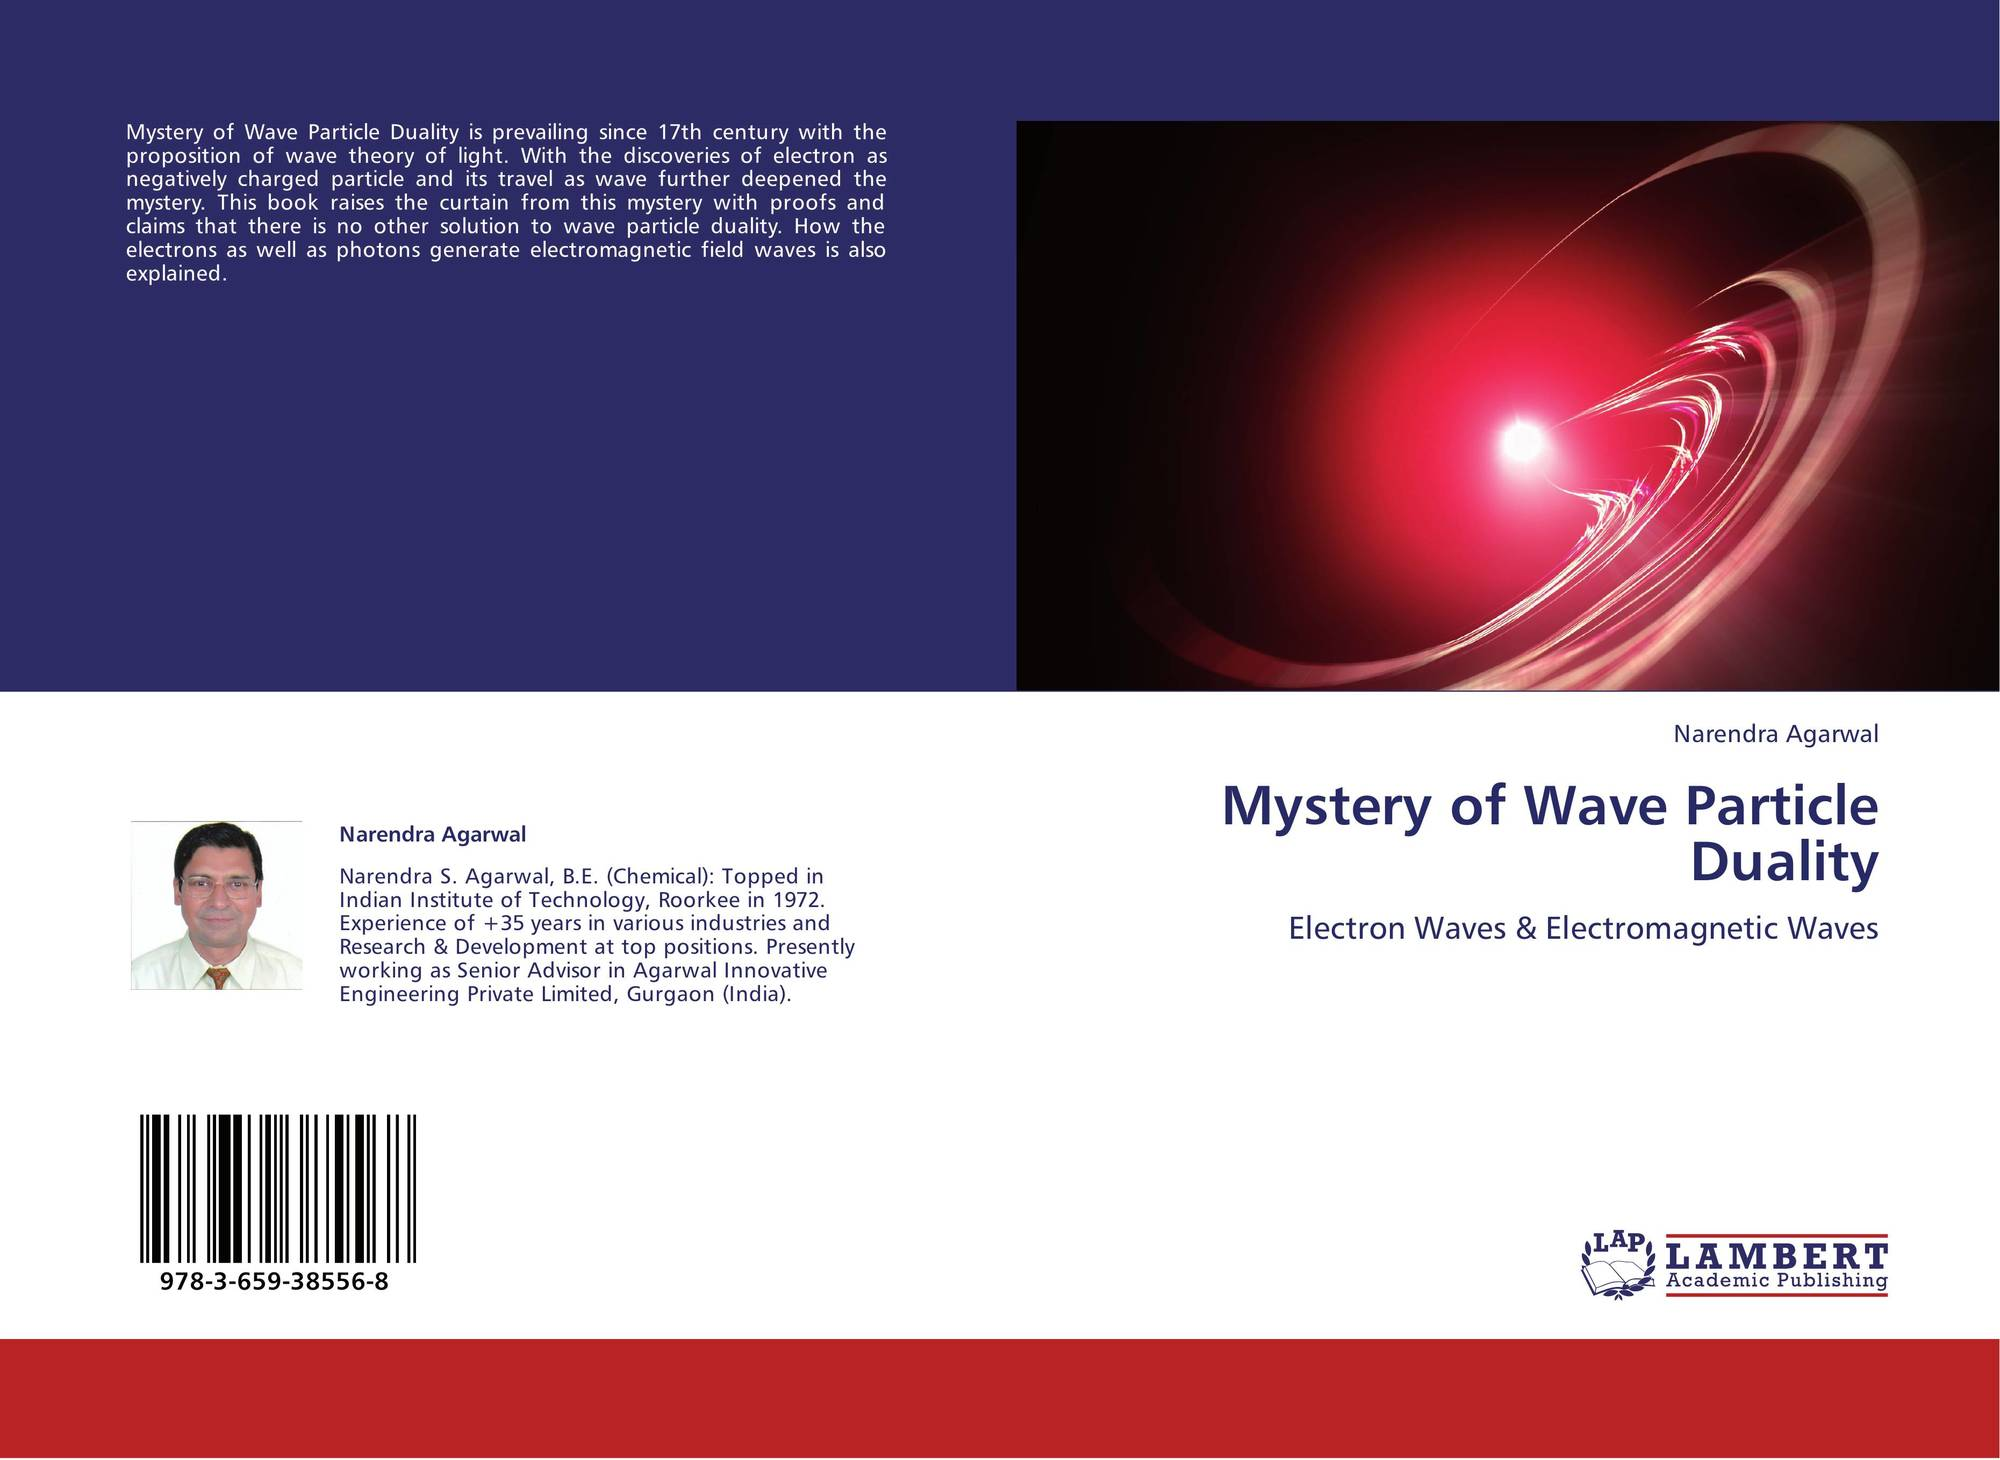 Mystery of Wave Particle Duality, 978-3-659-38556-8